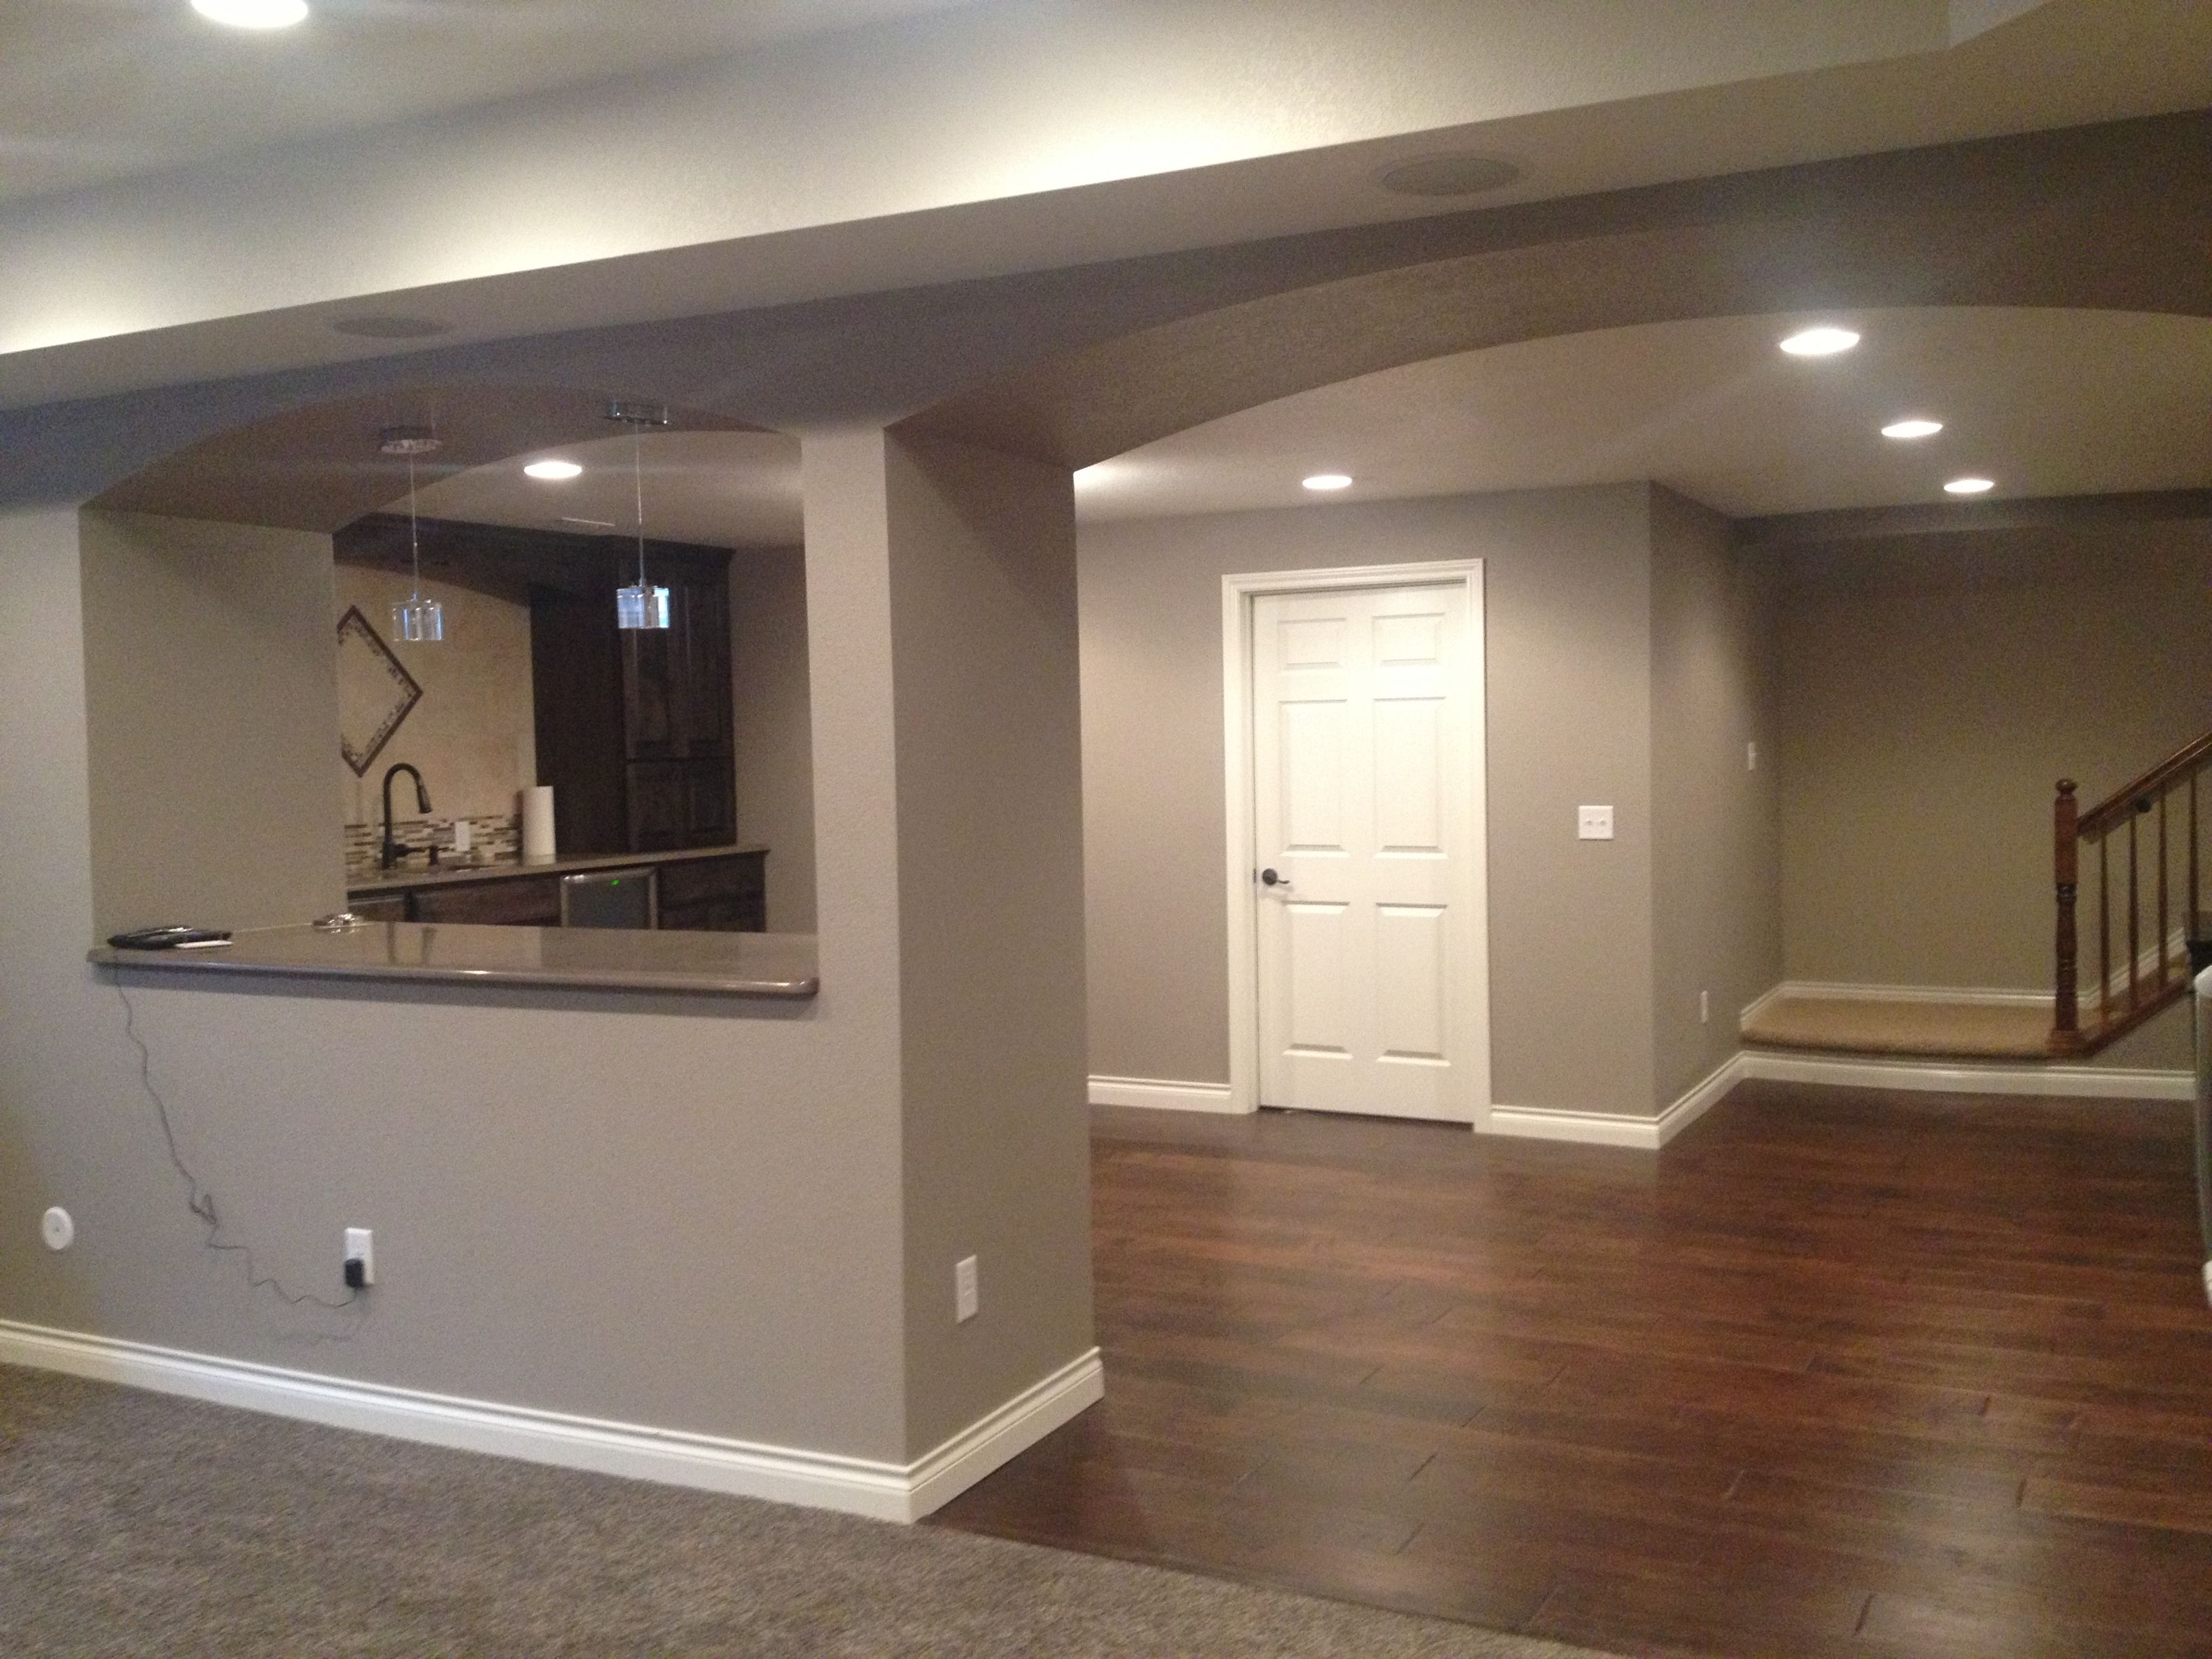 Inspirational Painting Ideas for Basement